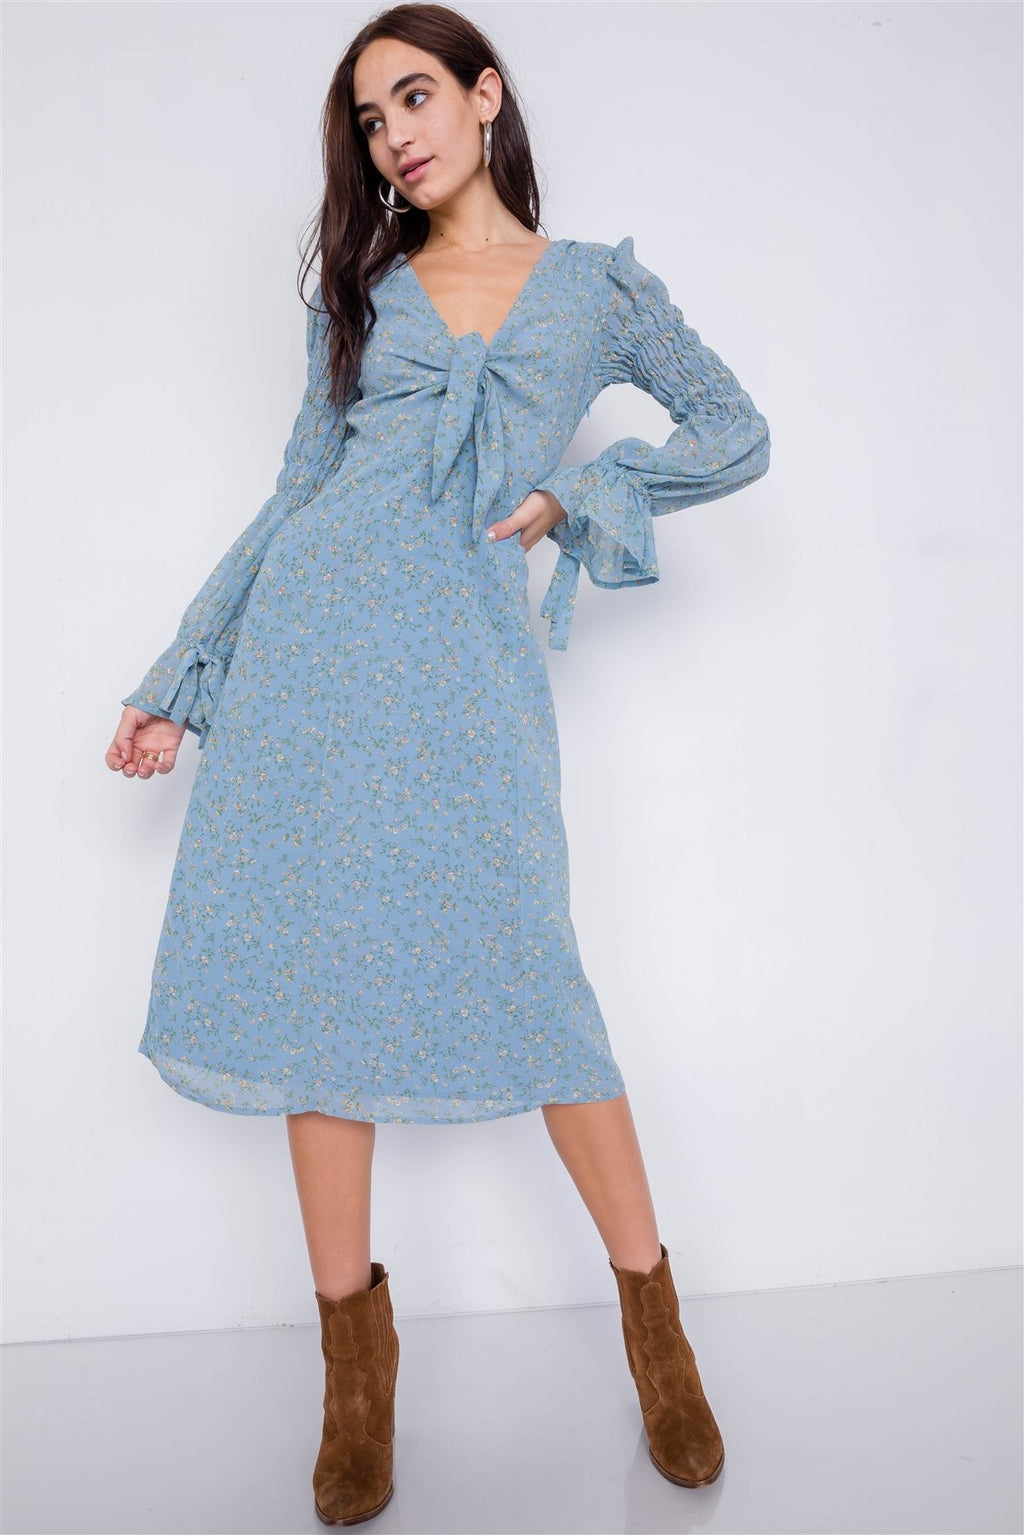 Skyler Blue Cinched Puff Sleeve Dress